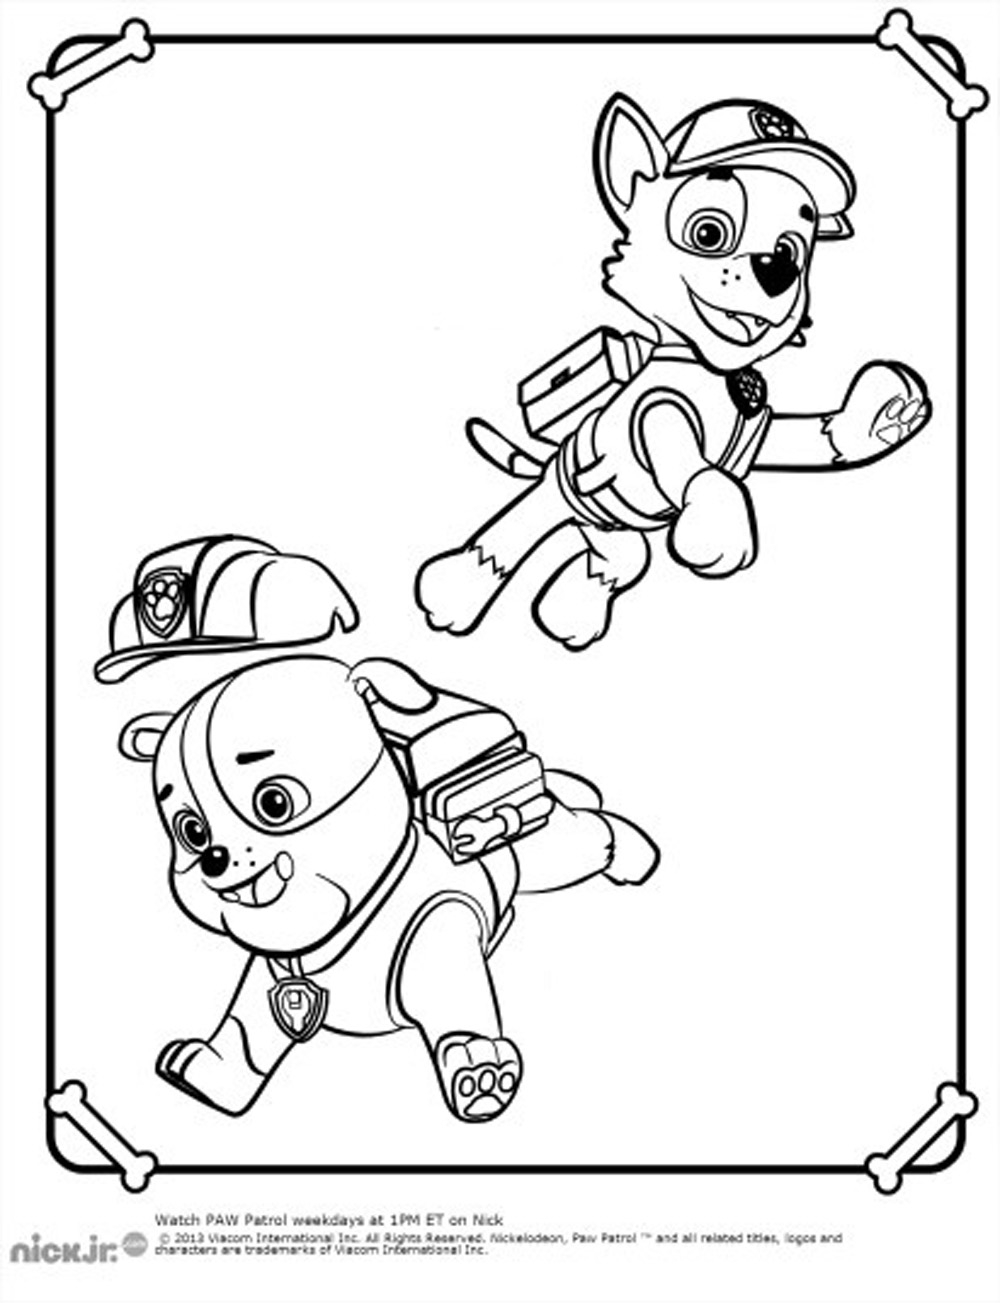 rubble paw patrol coloring page - 2